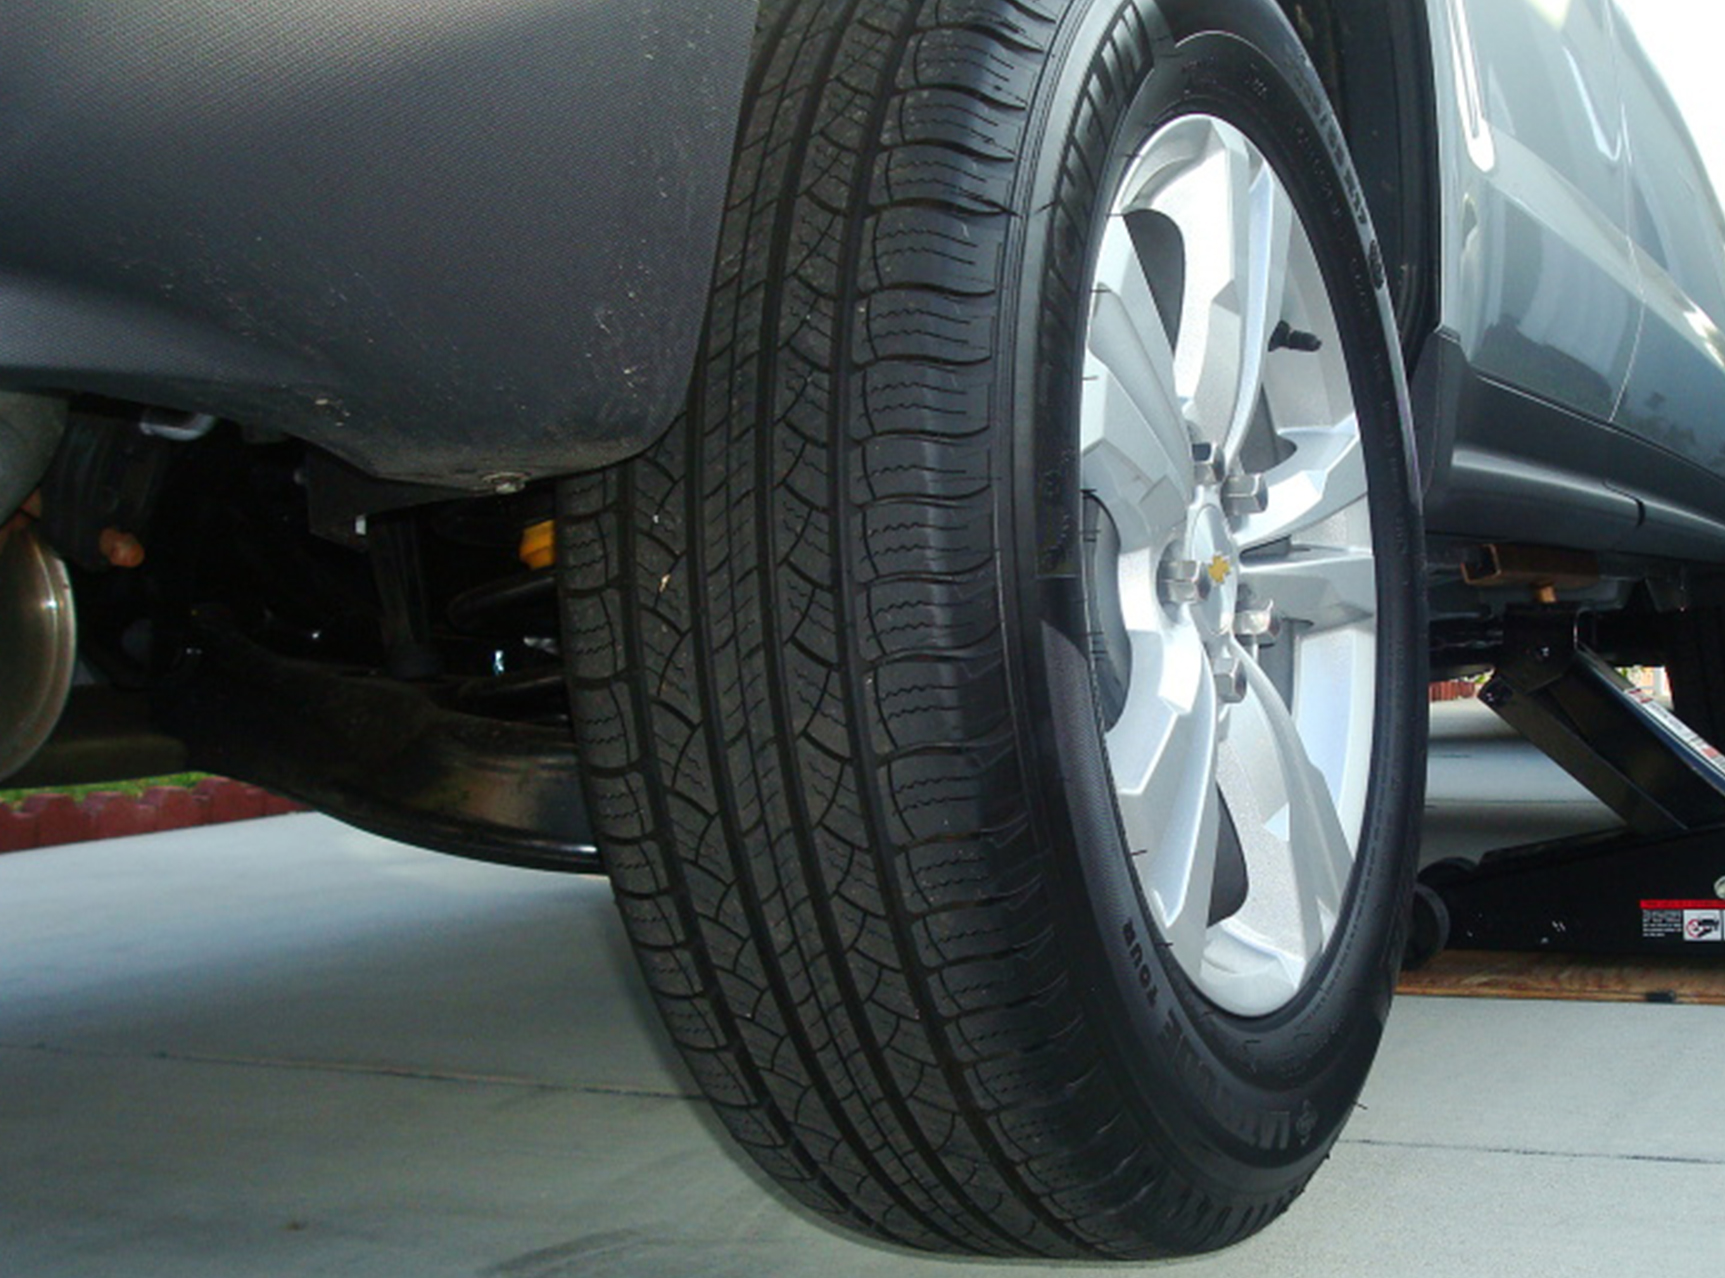 Tire Service Offers in Gainesville  Florida   Gainesville Buick GMC Automotive Tire Basics